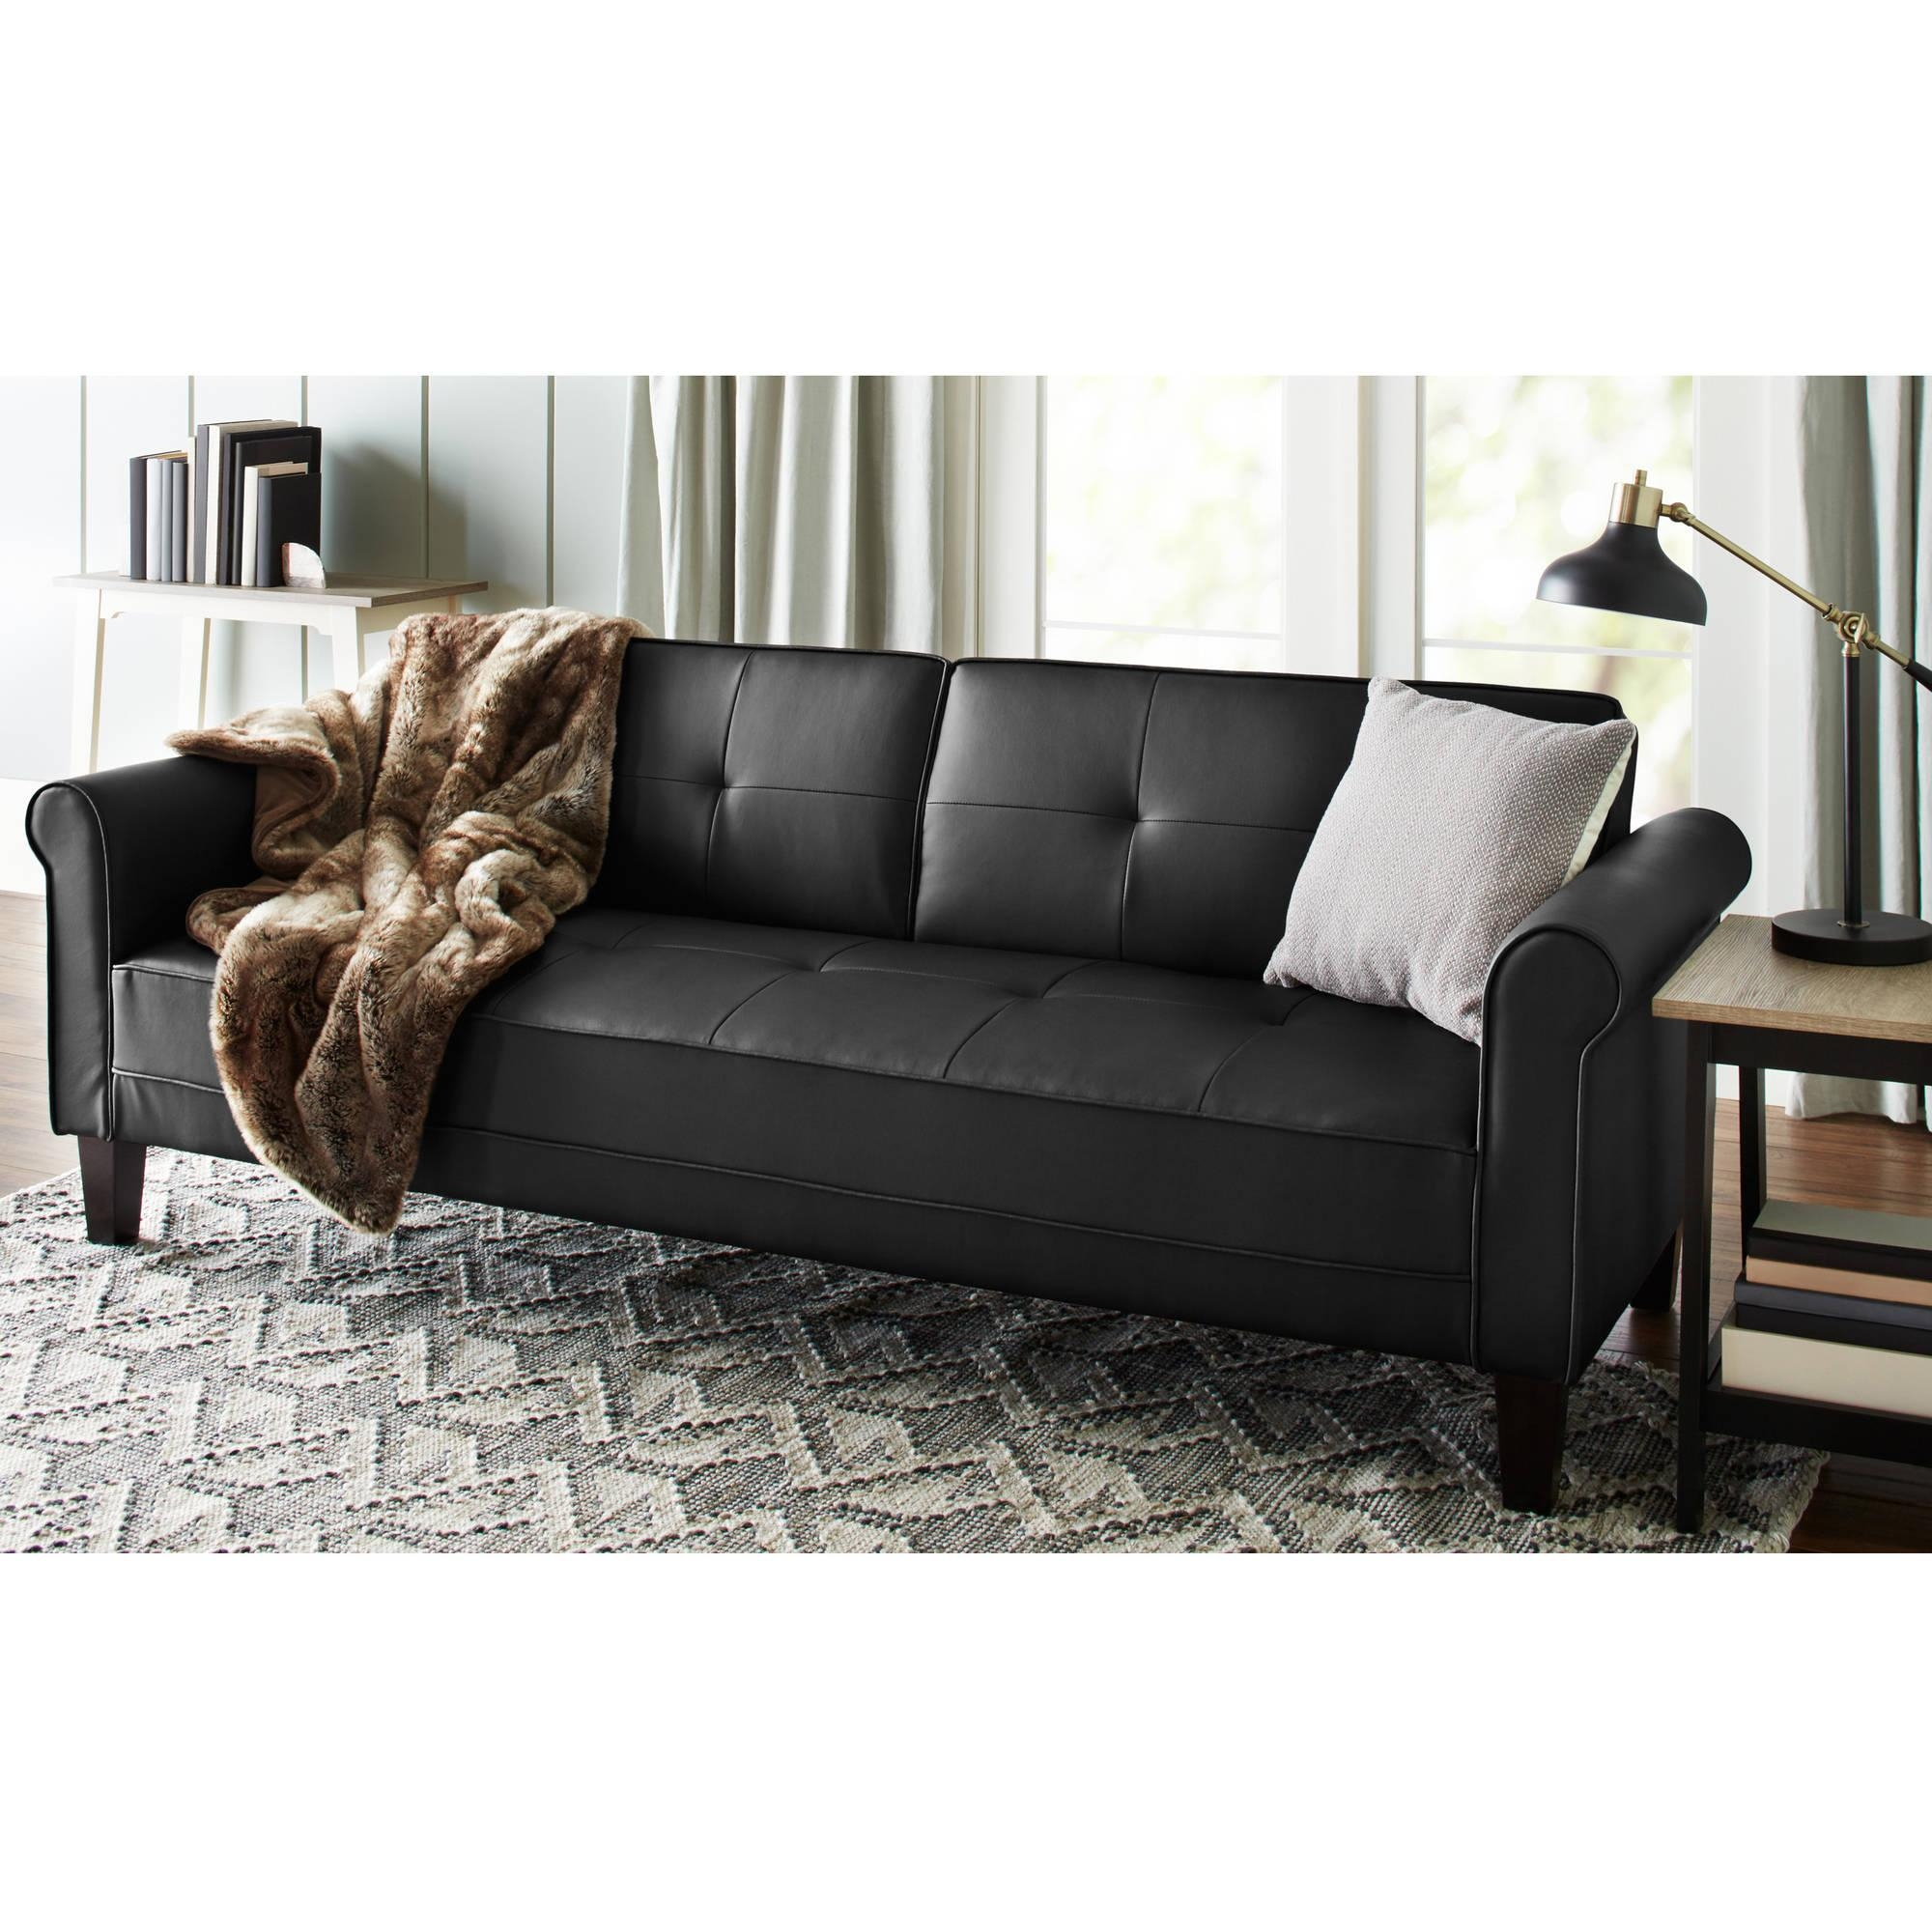 Leather Faux Fold Down Futon Sofa Bed Couch Sleeper Furniture For Faux Leather Futon Sofas (Image 9 of 20)